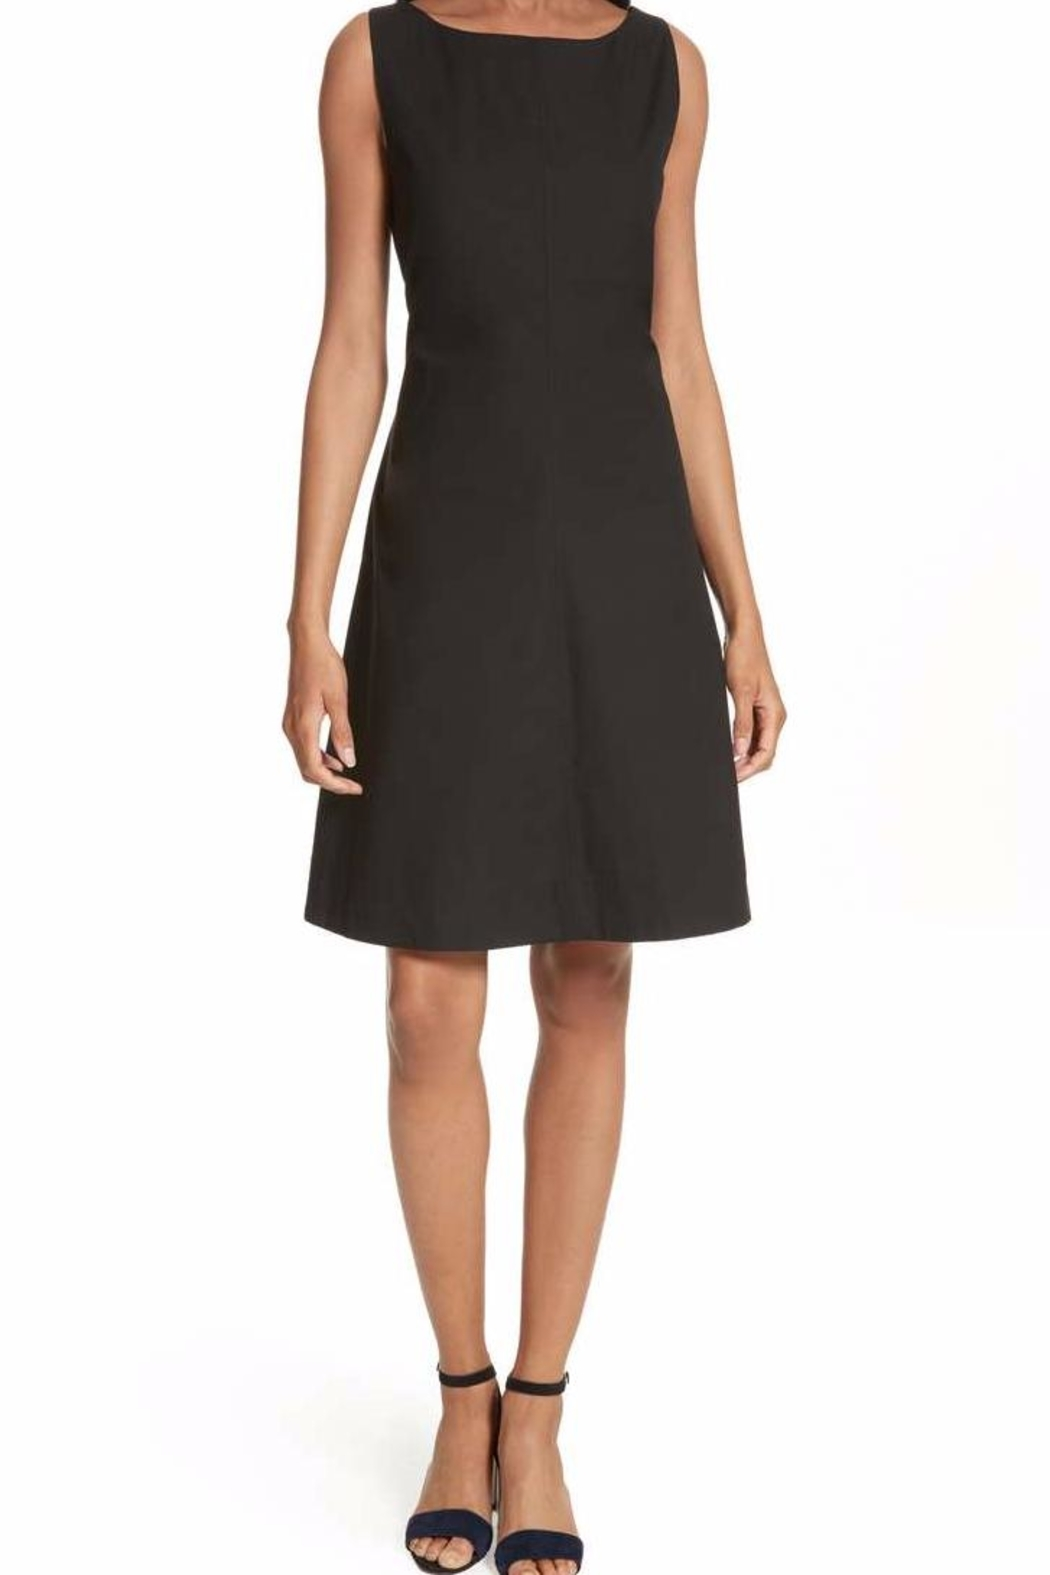 Theory Black Cocktail Dress - Front Cropped Image